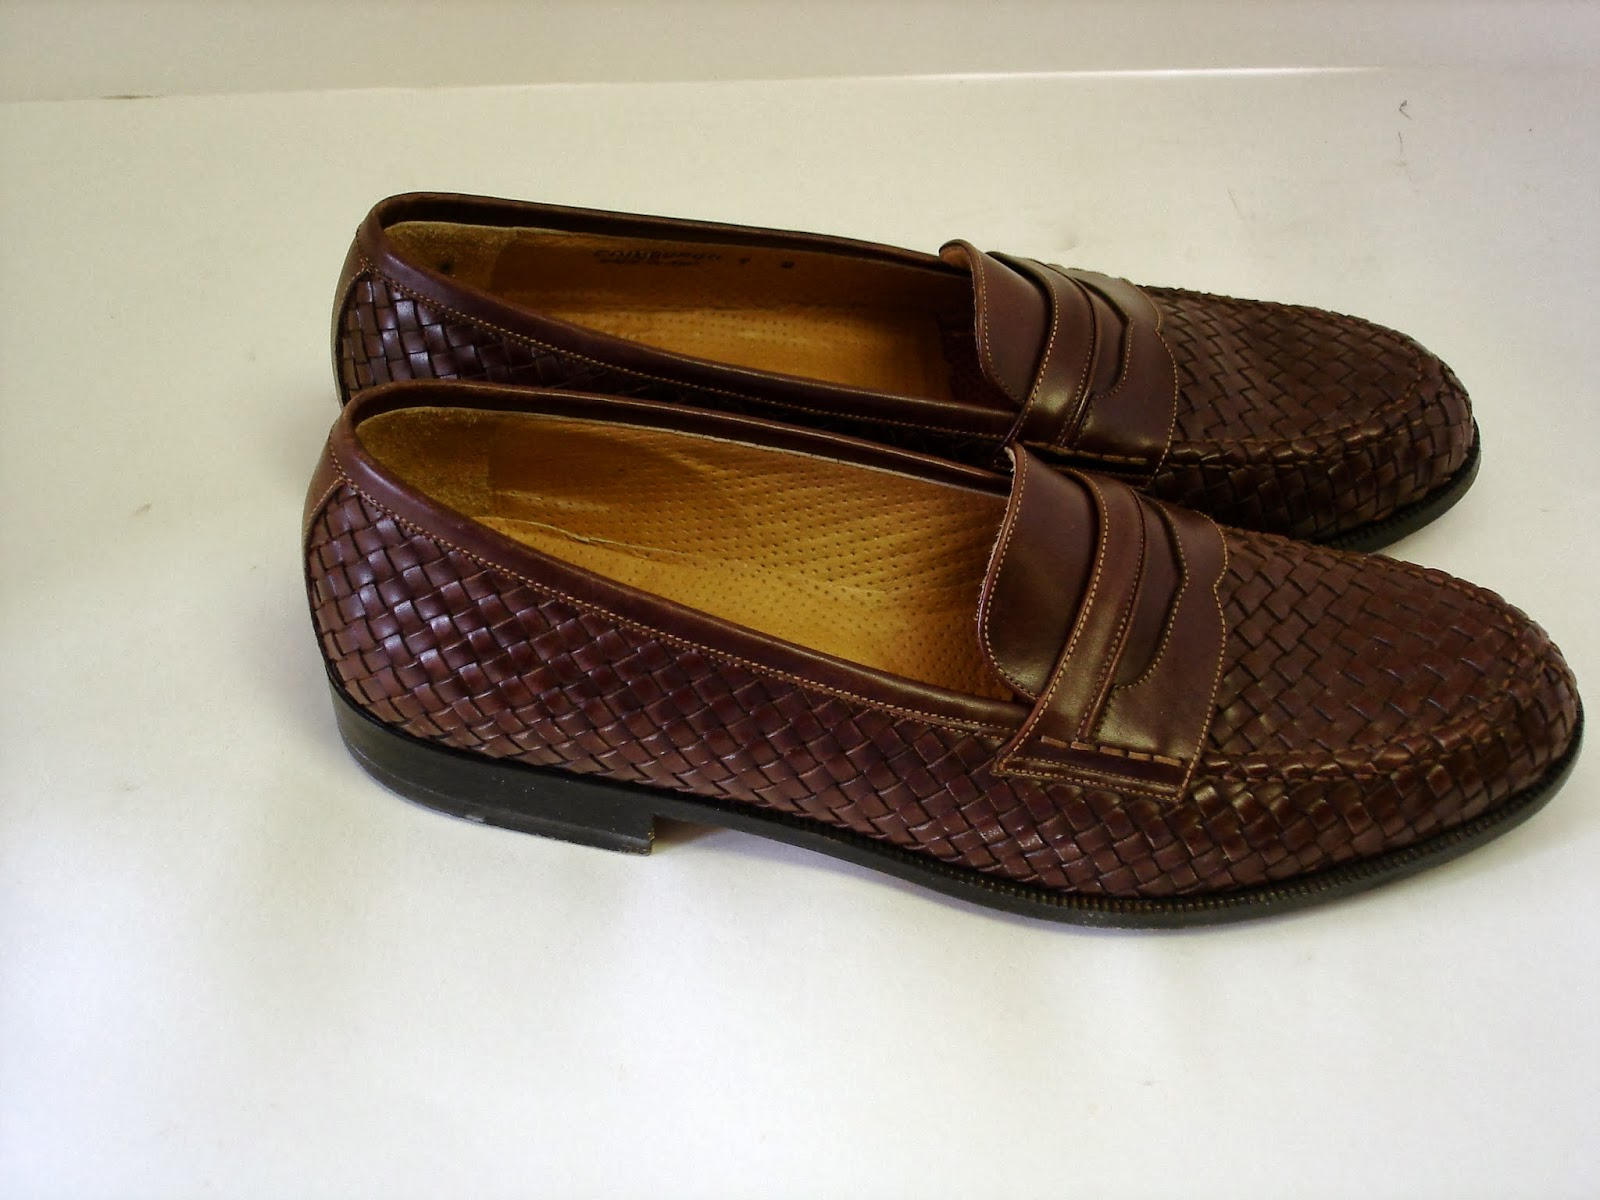 8a026acbda0d9 Still Stunning Vintage Resale: Brown Bally Woven Leather Men's ...